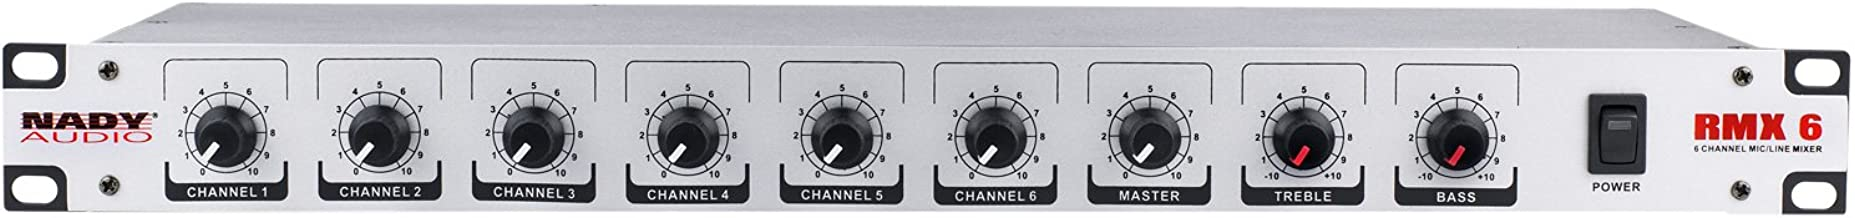 """NADY RMX-6 6 channel Rackmount Mono Microphone / Line mixer with phantom power and master tone controls -  XLR and ¼"""" inputs and outputs"""